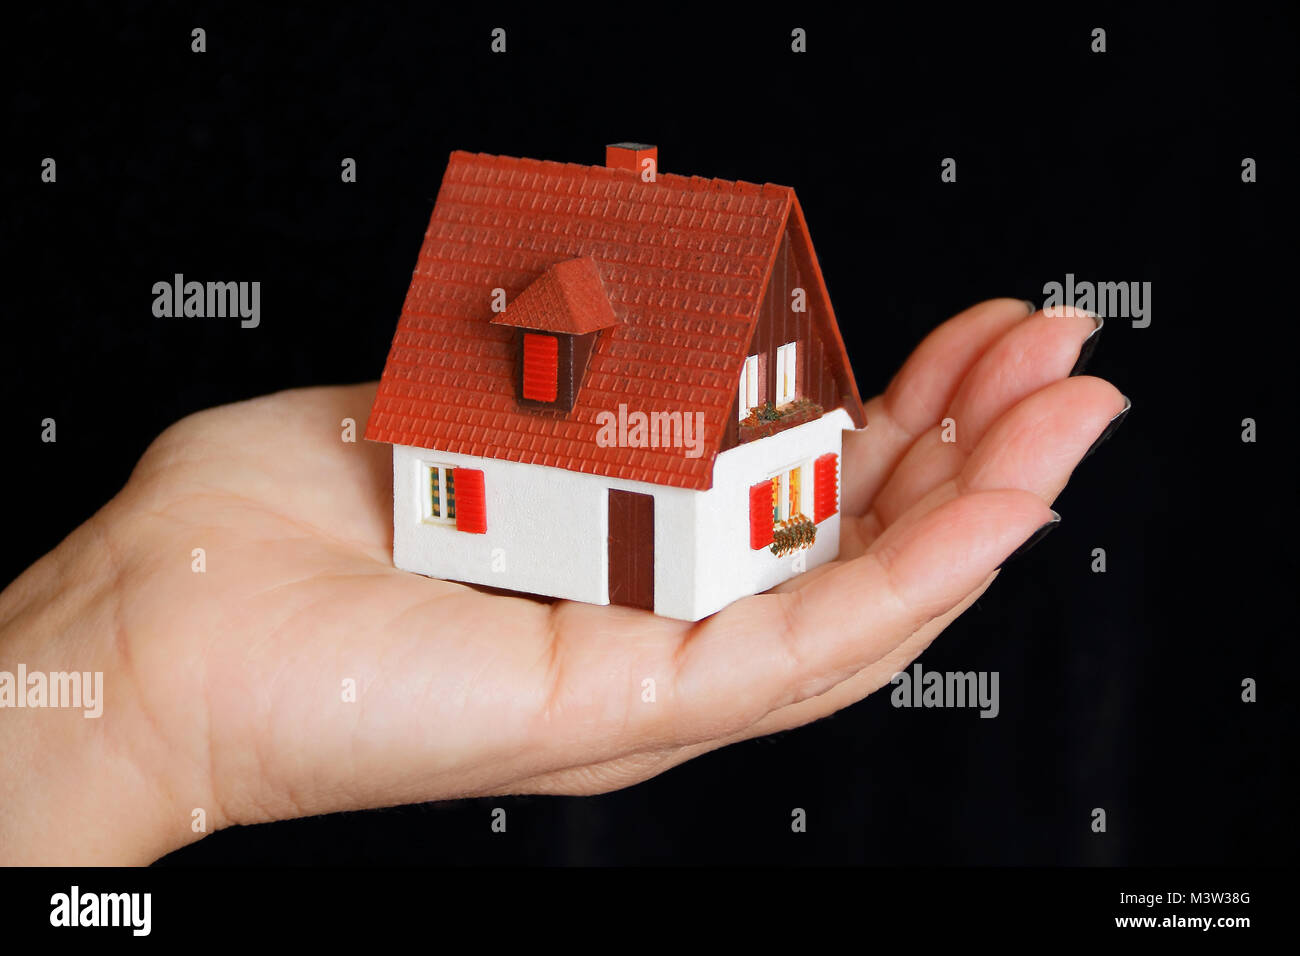 Image Of Dollhouse In Human Hand On Black Background Stock Photo